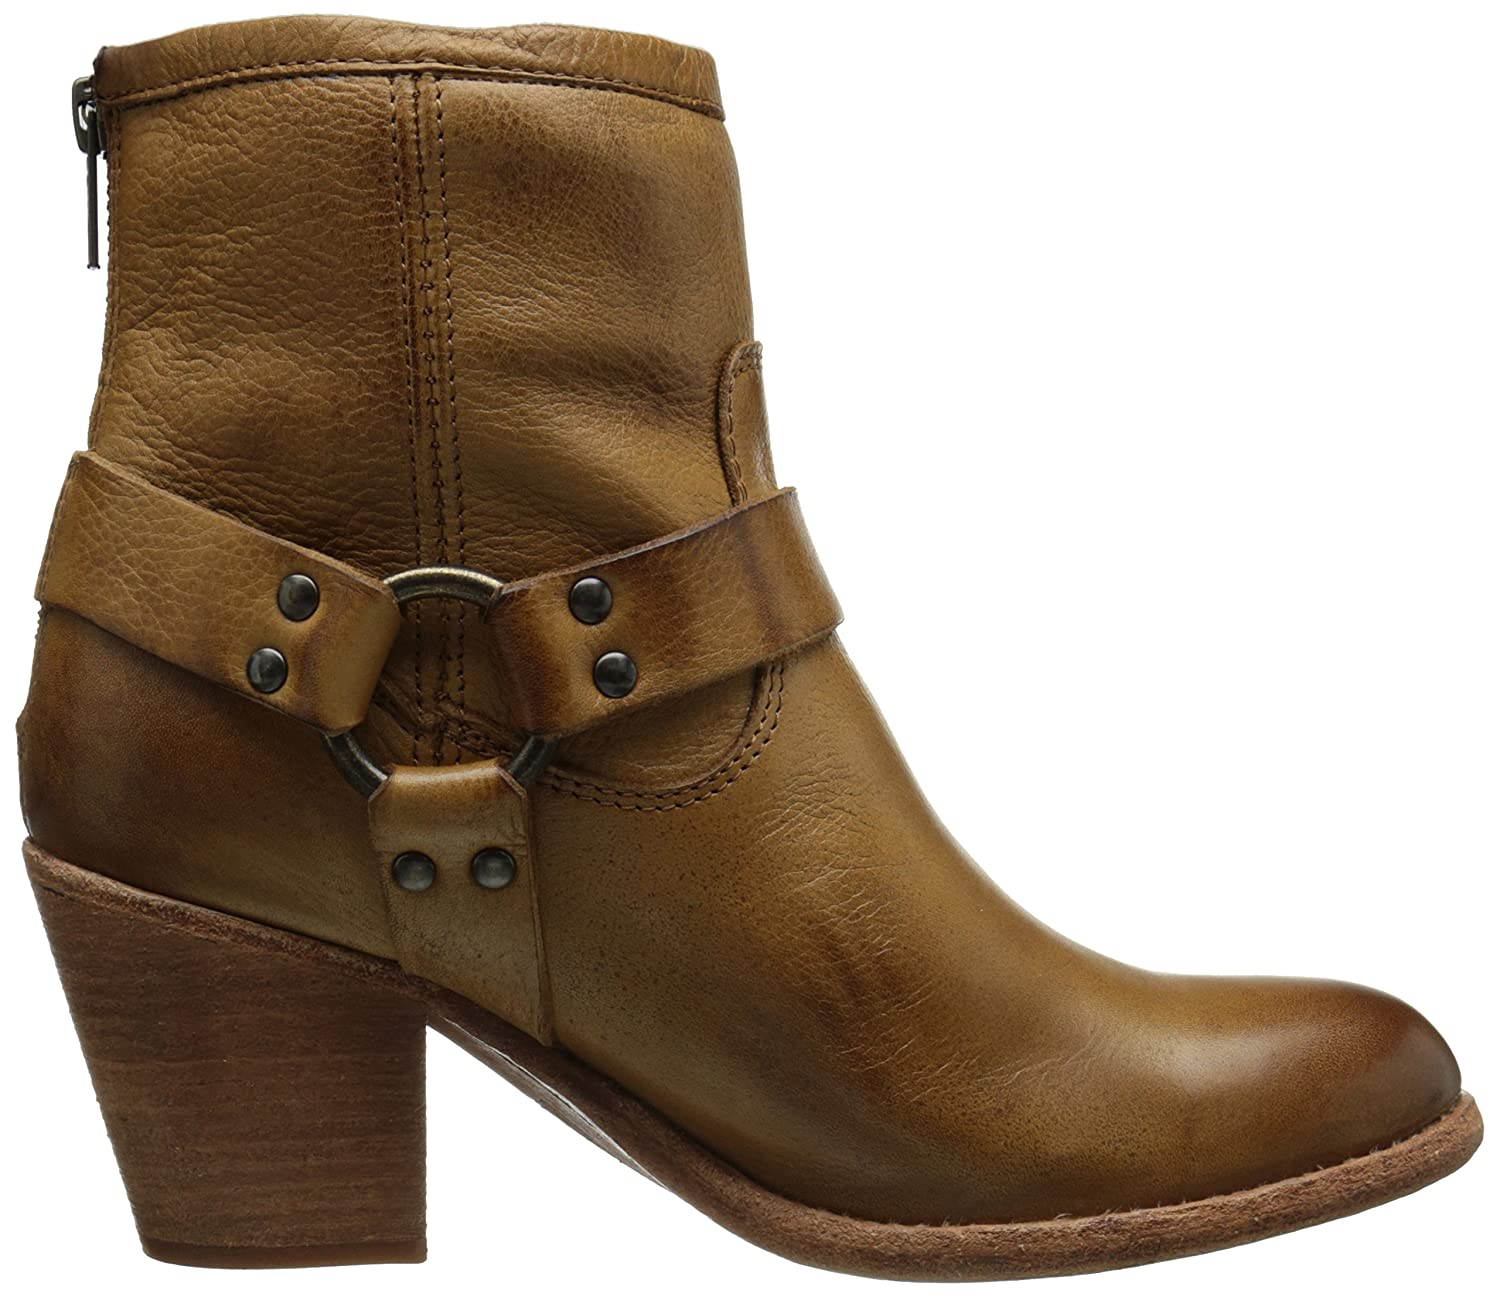 FRYE Women's Tabitha Harness Short Boot B00MUBB9FM 9.5 B(M) US|Camel-77944